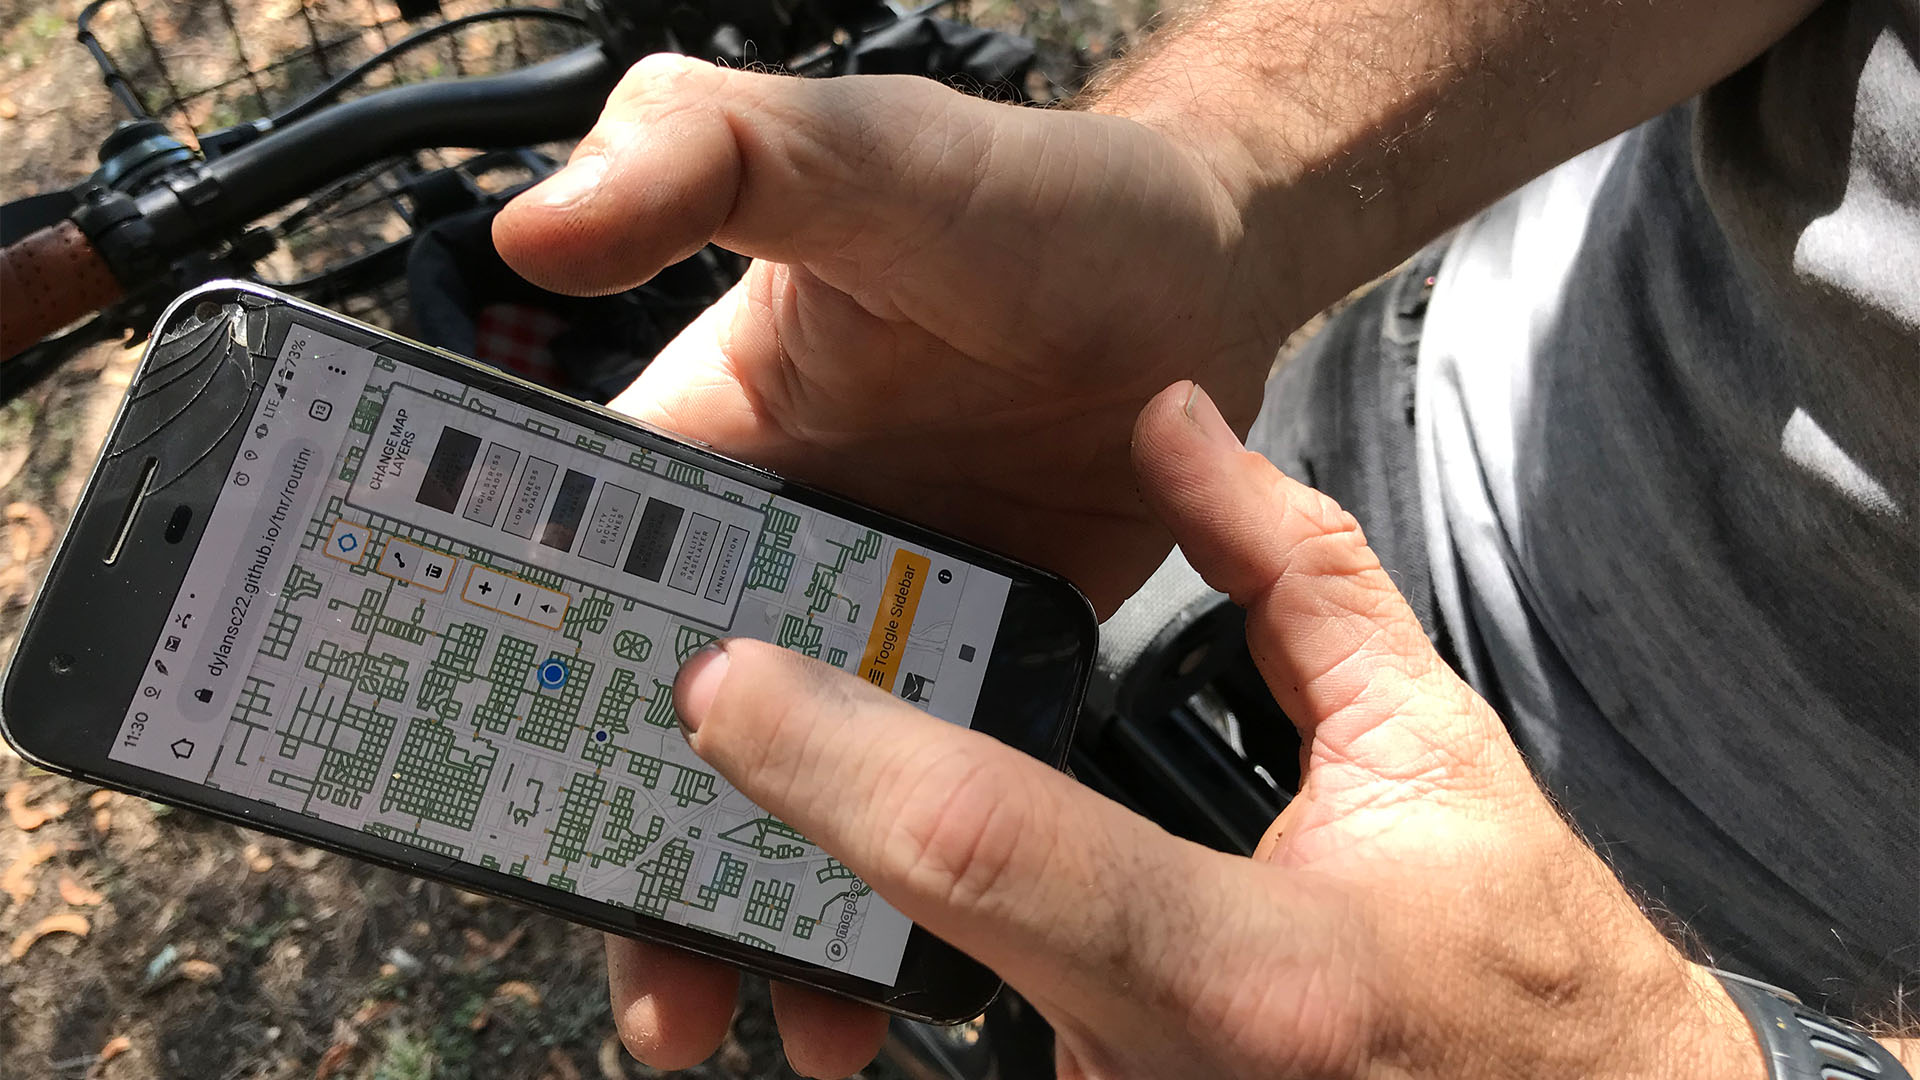 A local bicyclist created an interactive map to guide cyclists to streets with less traffic that feel safer than large roadways.